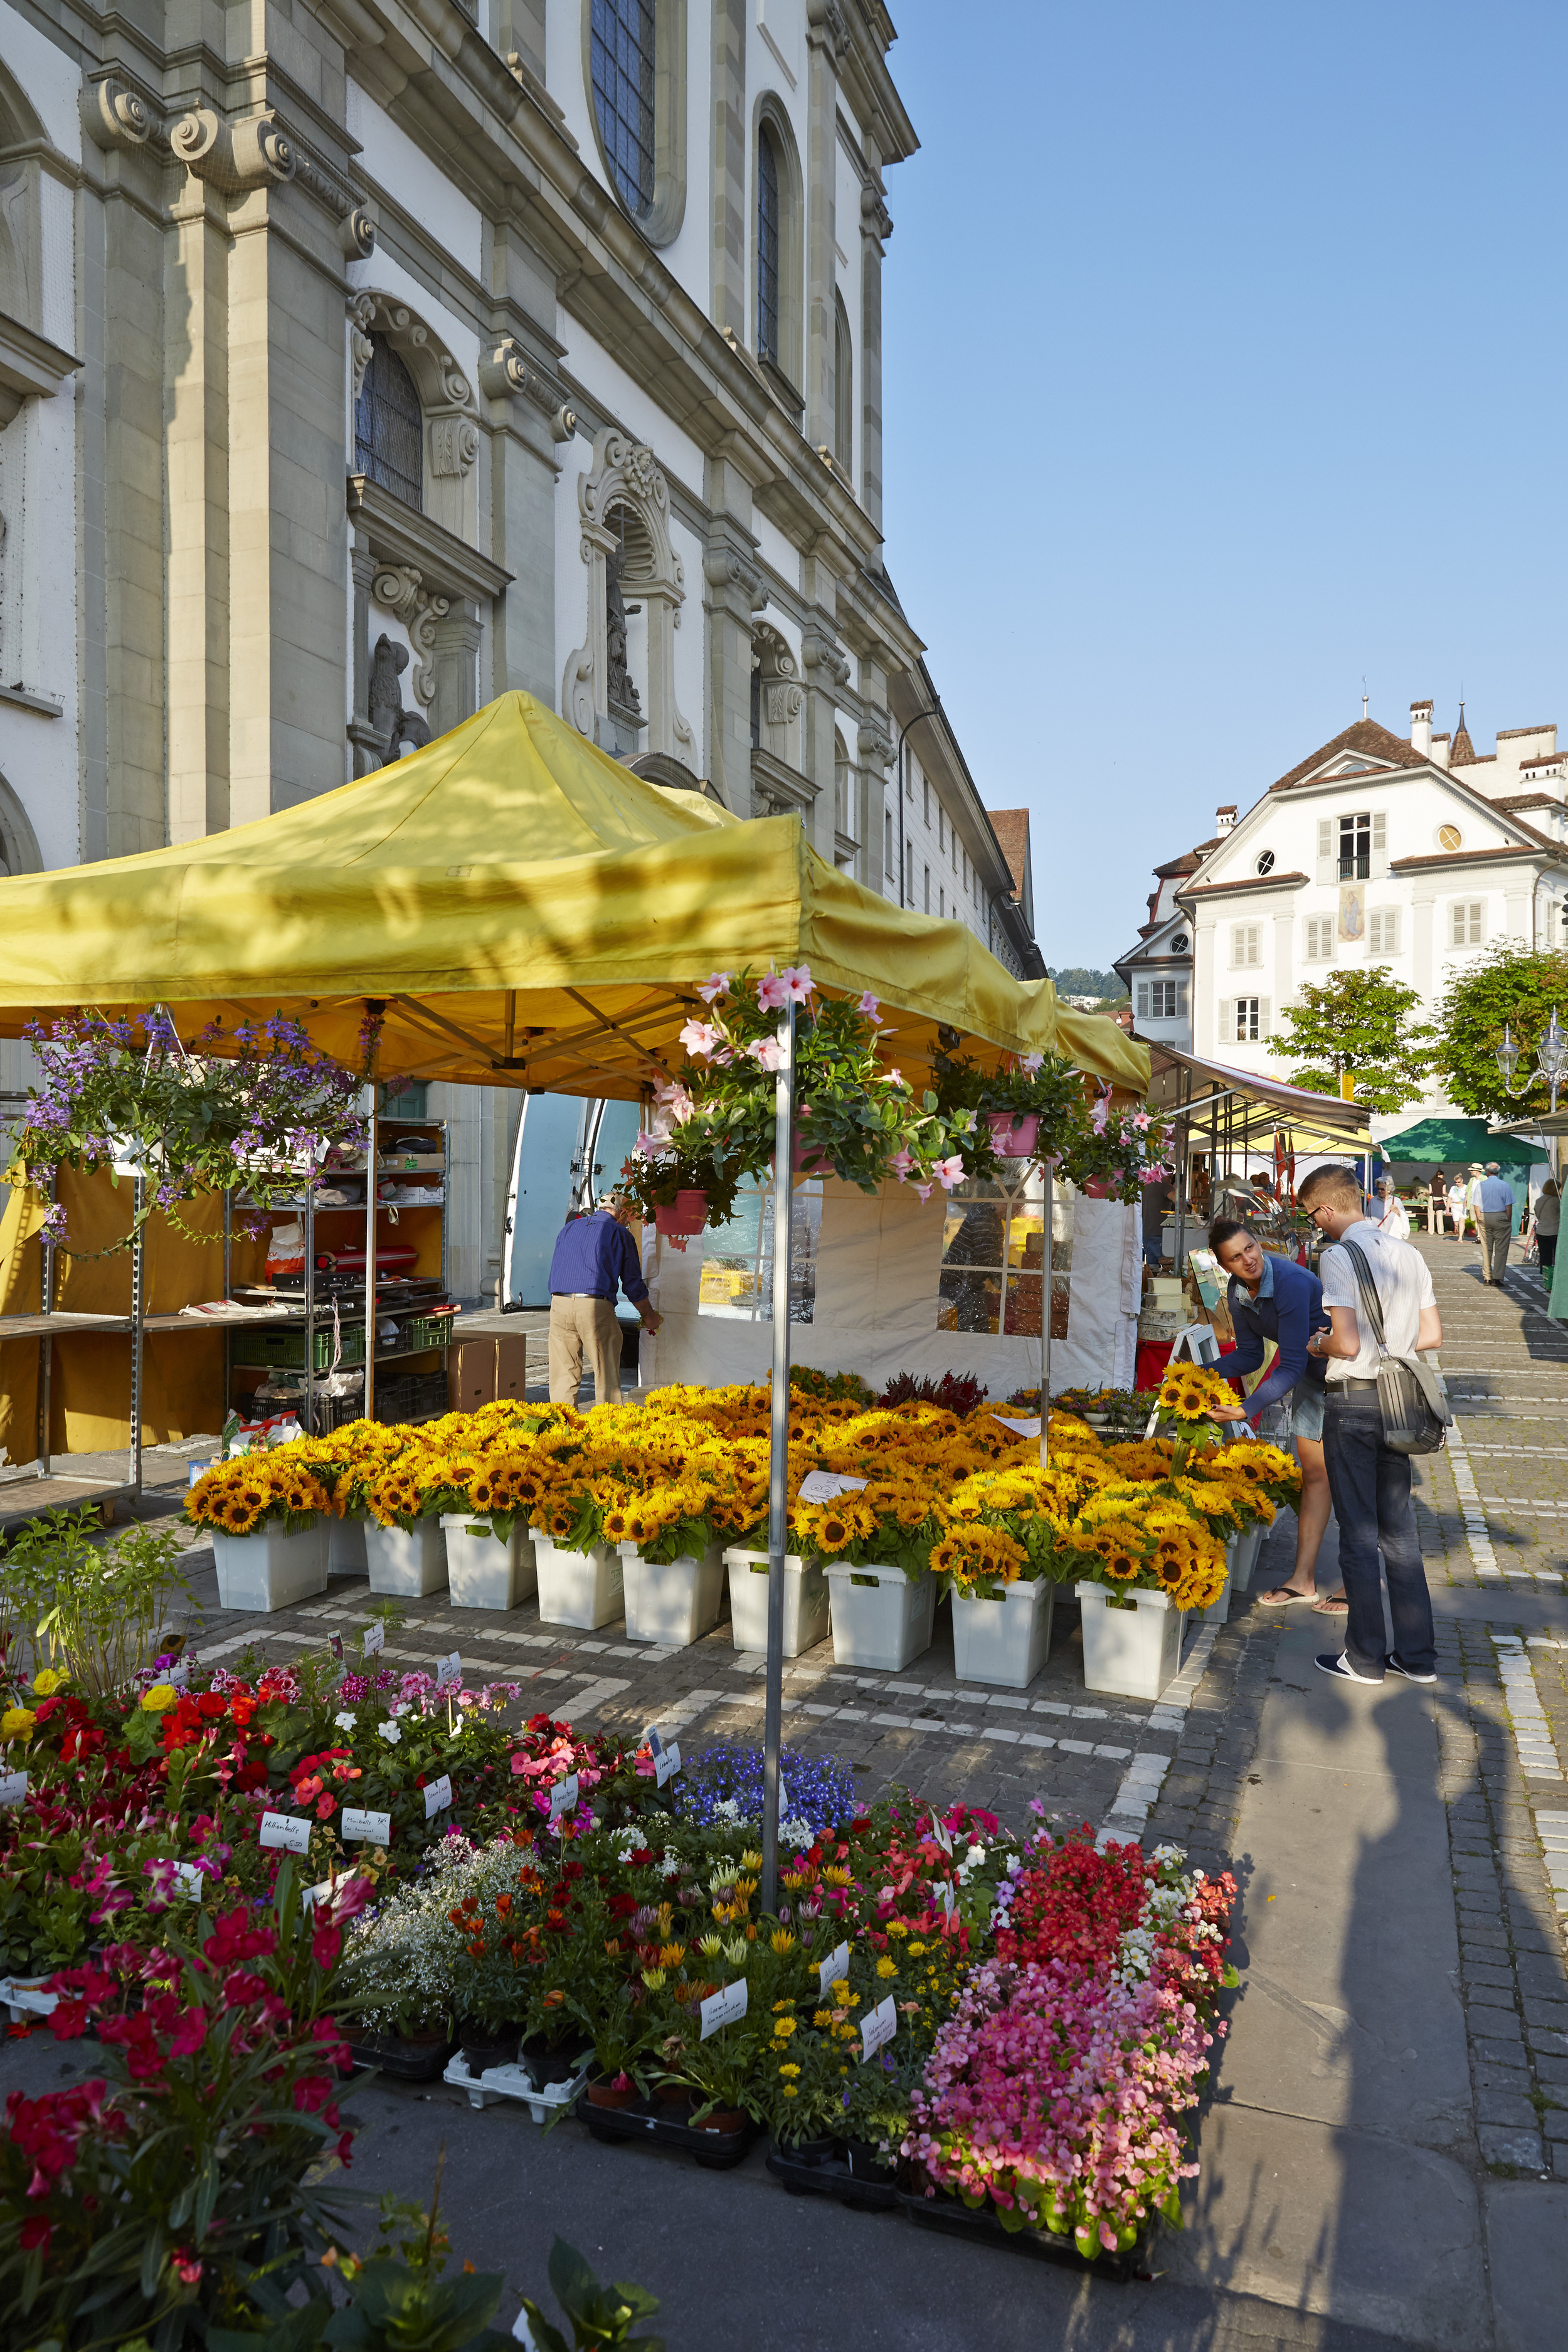 Flowers at the Lucerne market